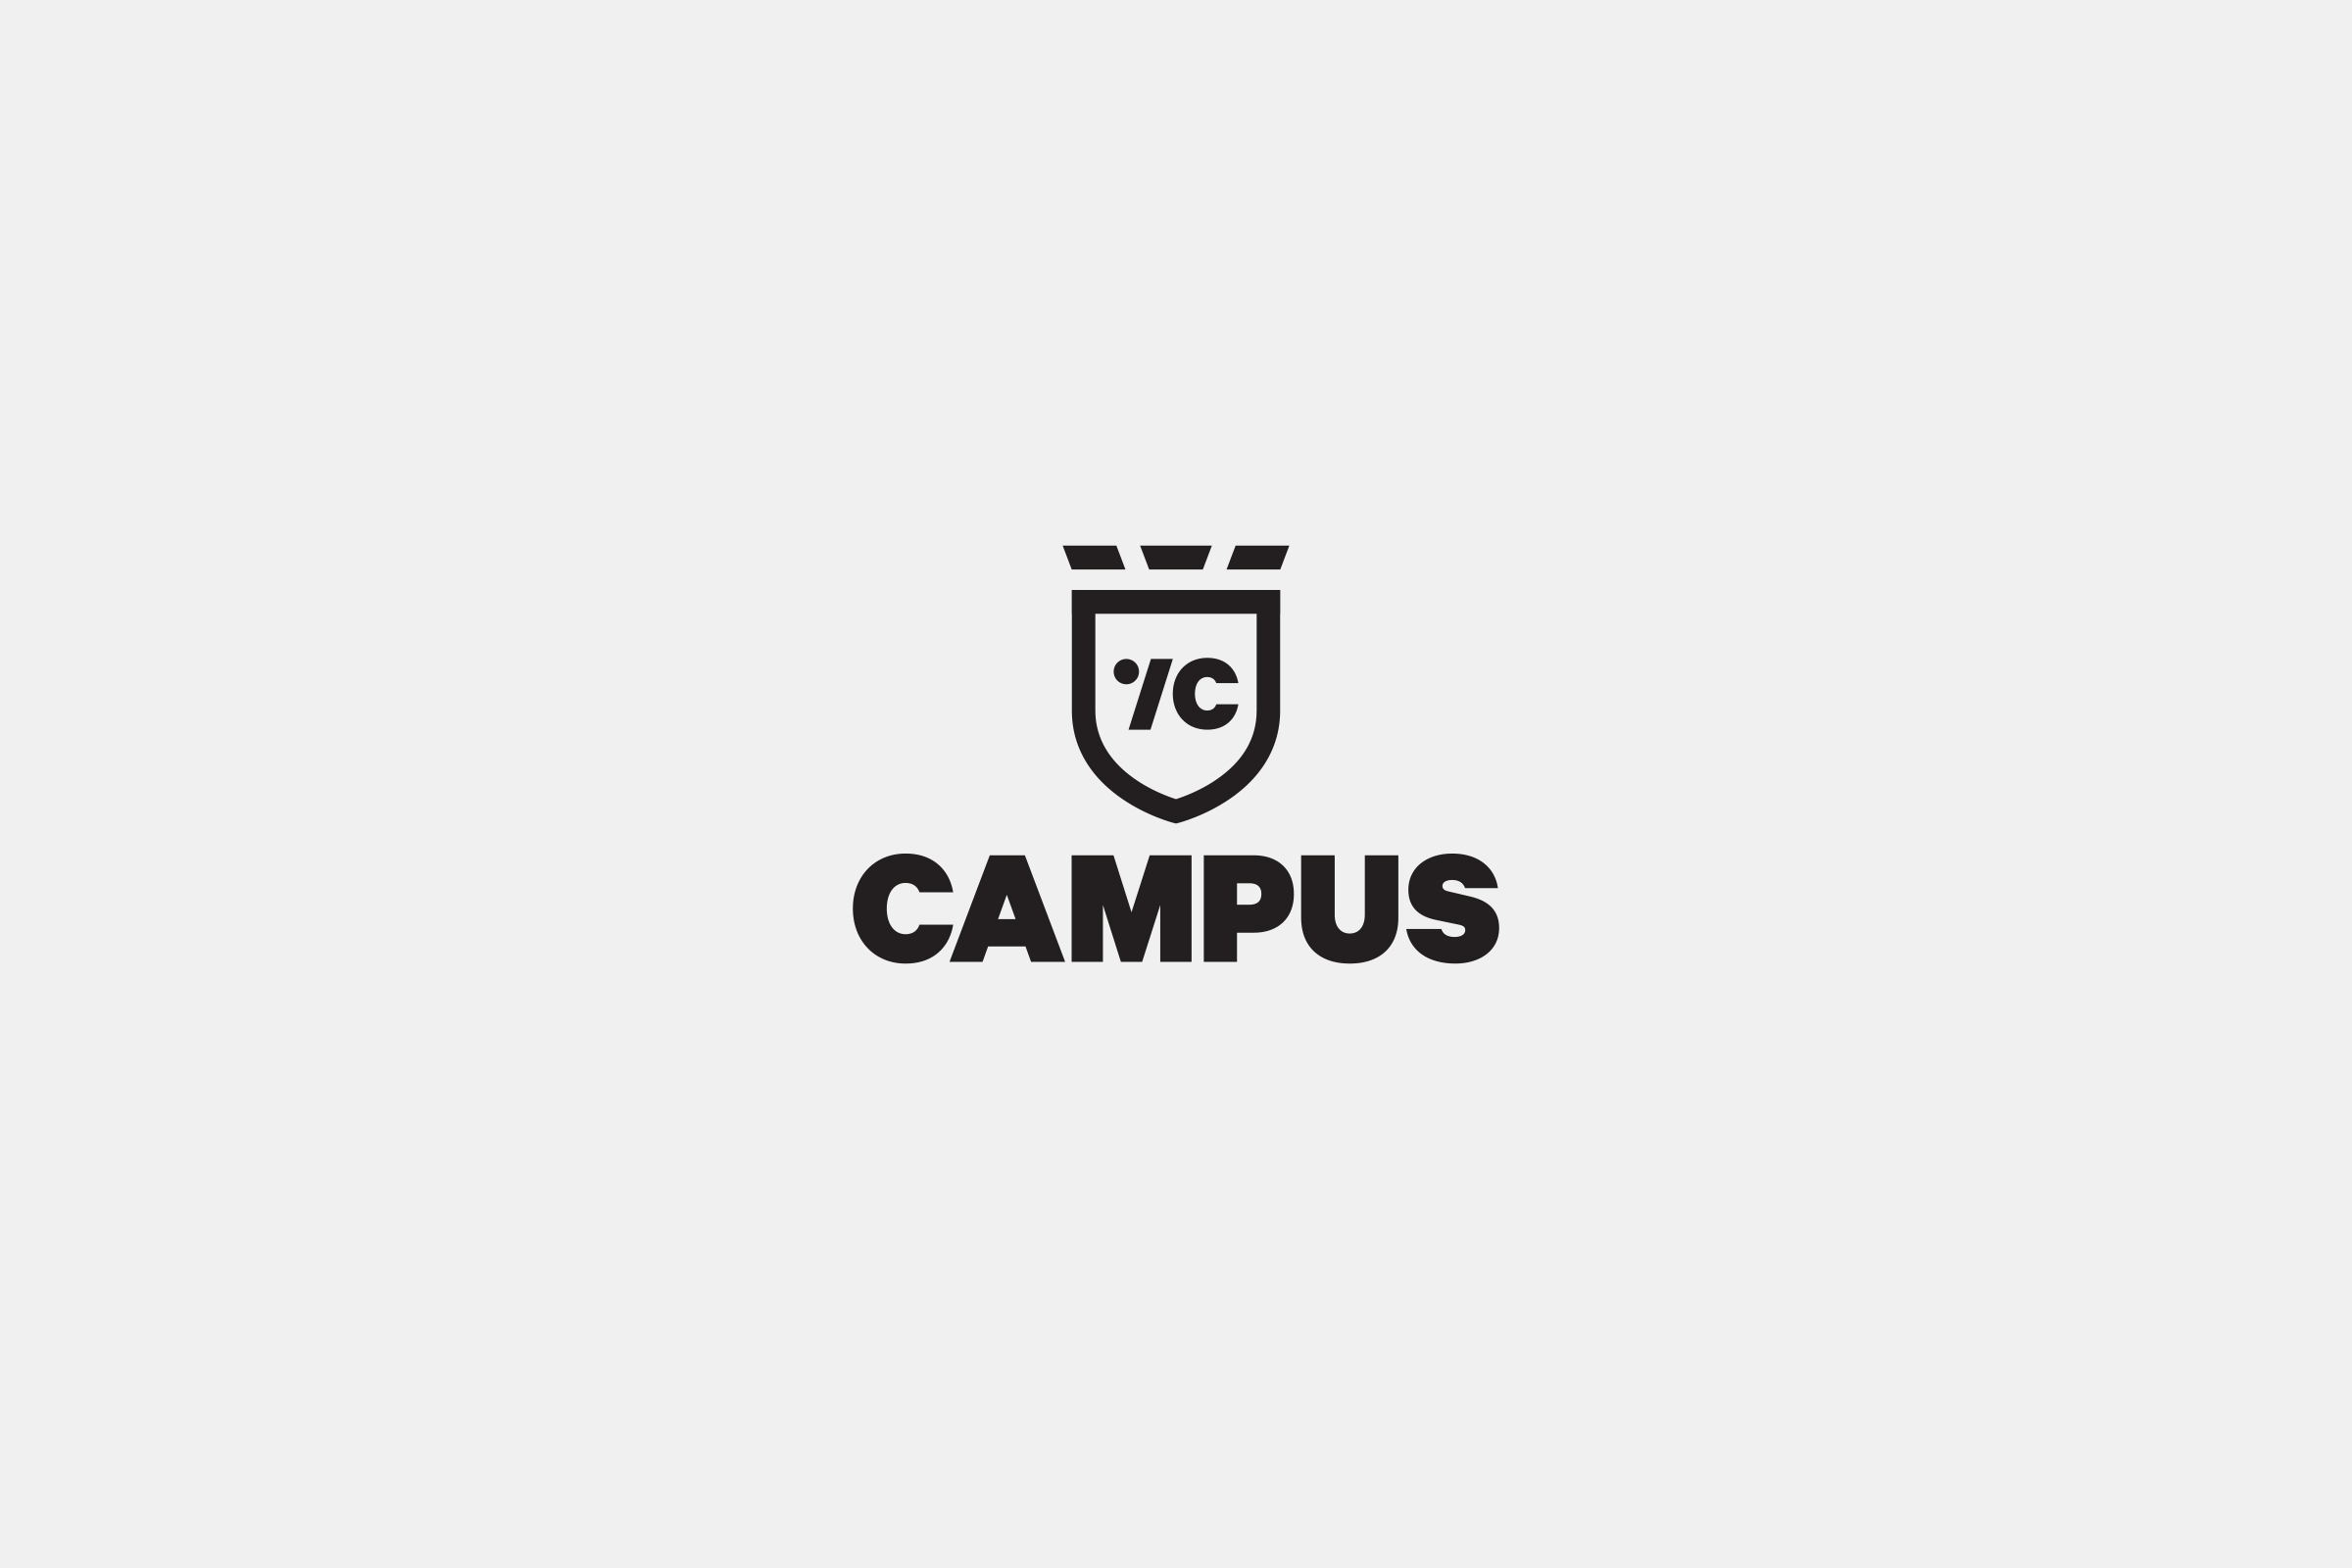 TBS_Campus_Logo_1